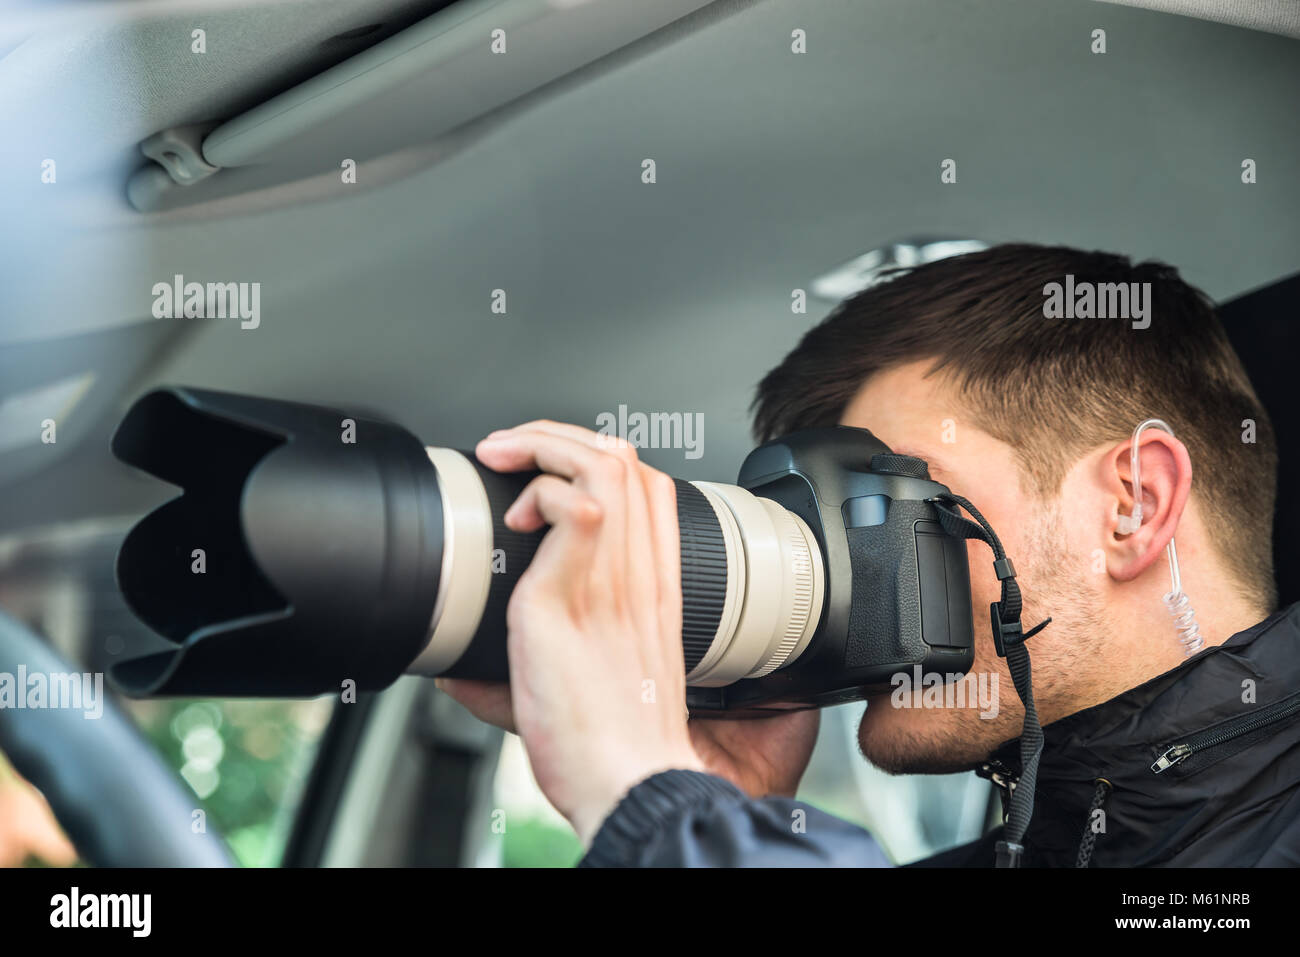 Close-up Of A Young Man Inside Car Photographing With Slr Camera - Stock Image